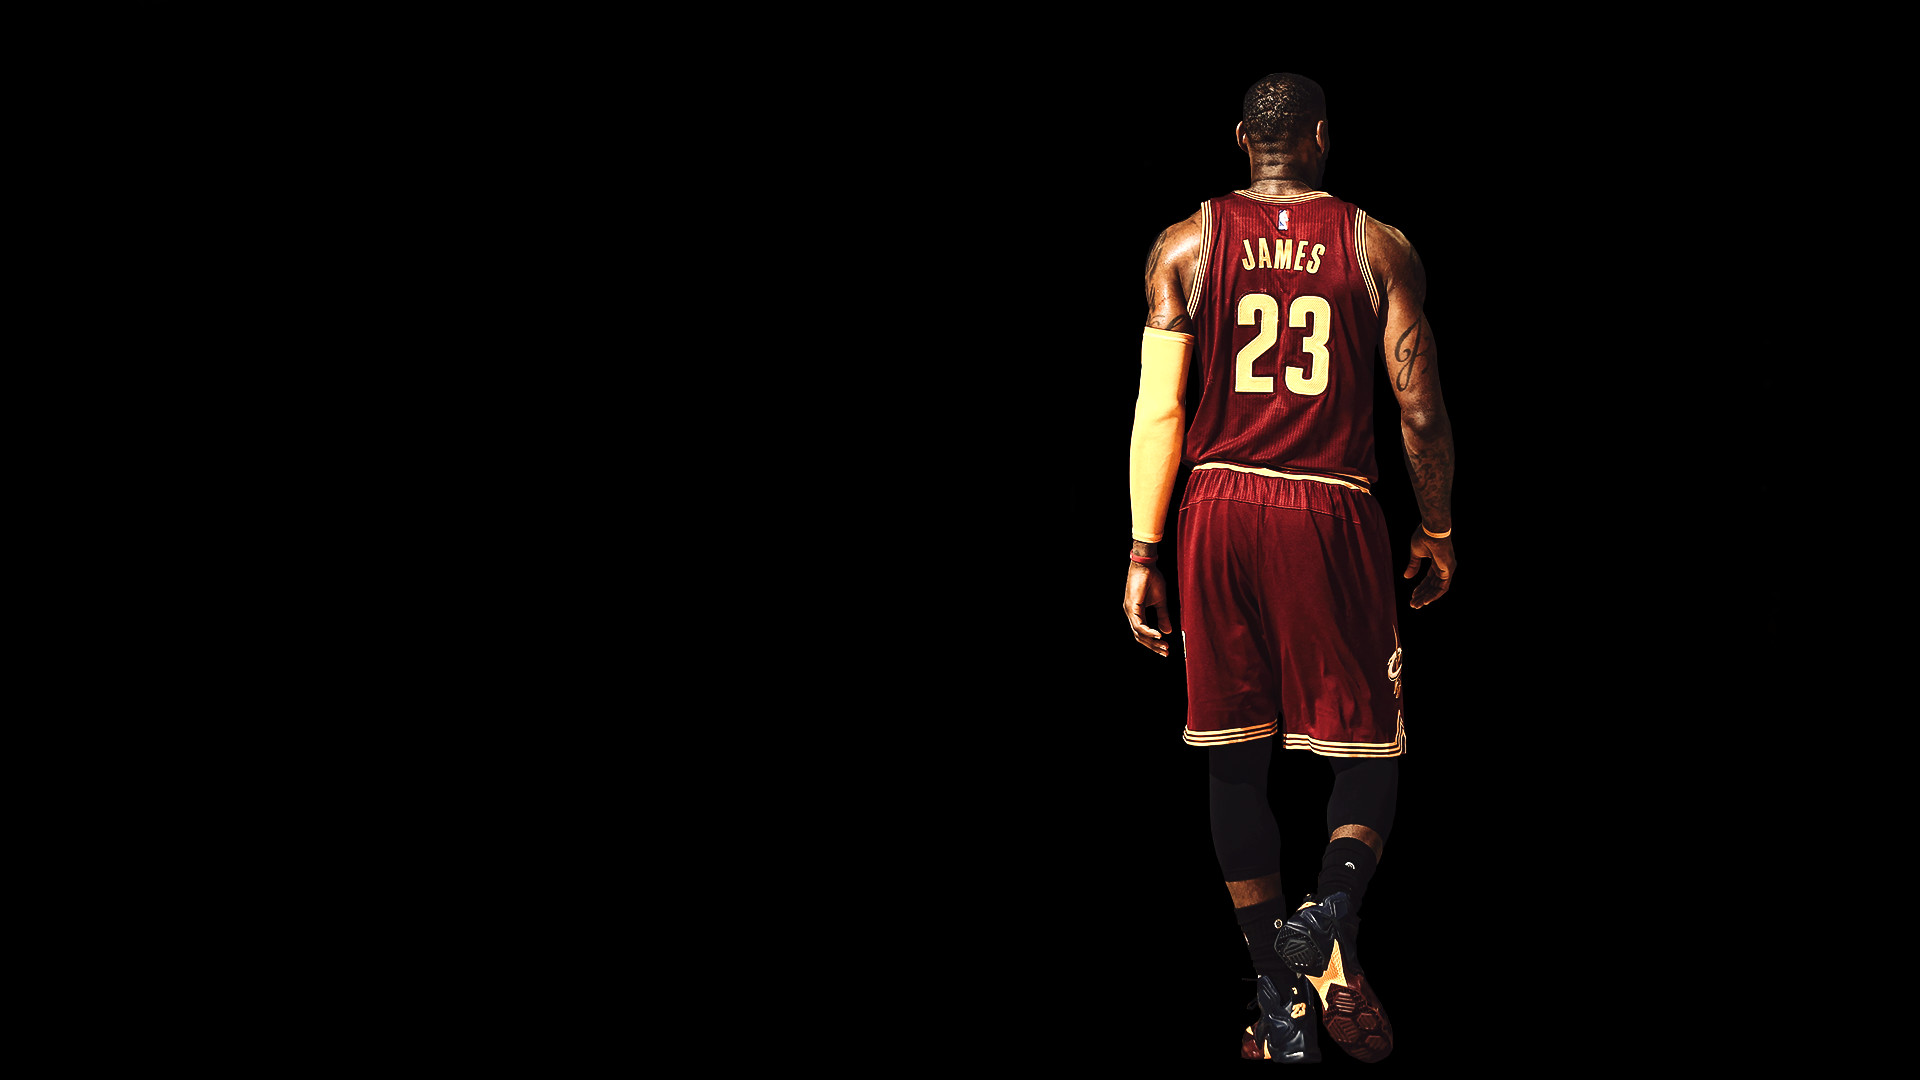 Lebron James Wallpaper HD ·①